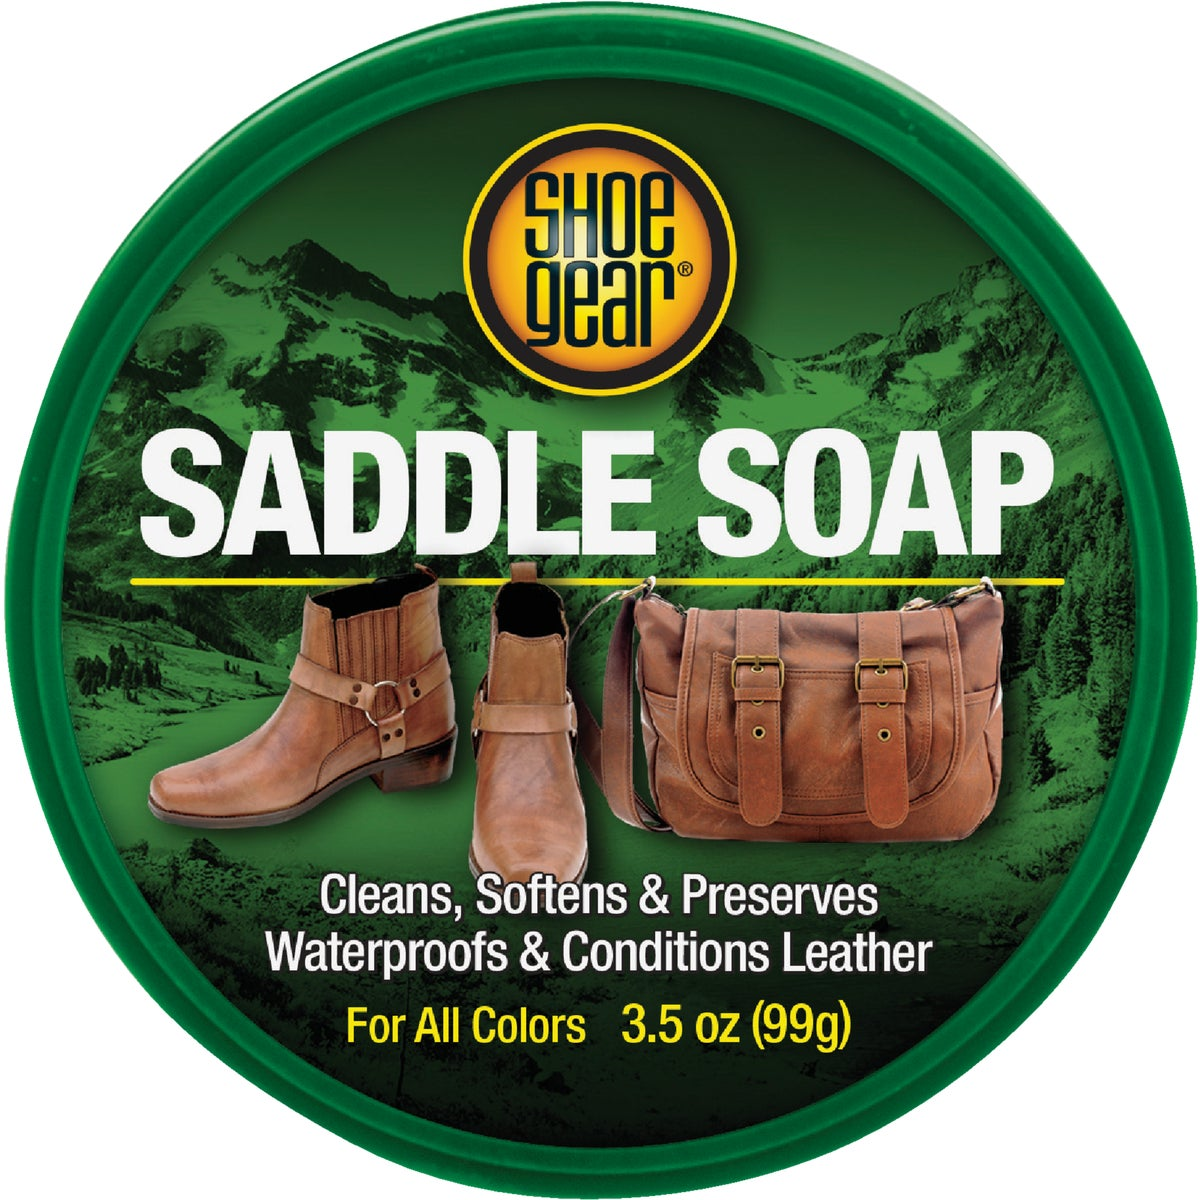 SADDLE SOAP PASTE - 10906 by Sc Johnson